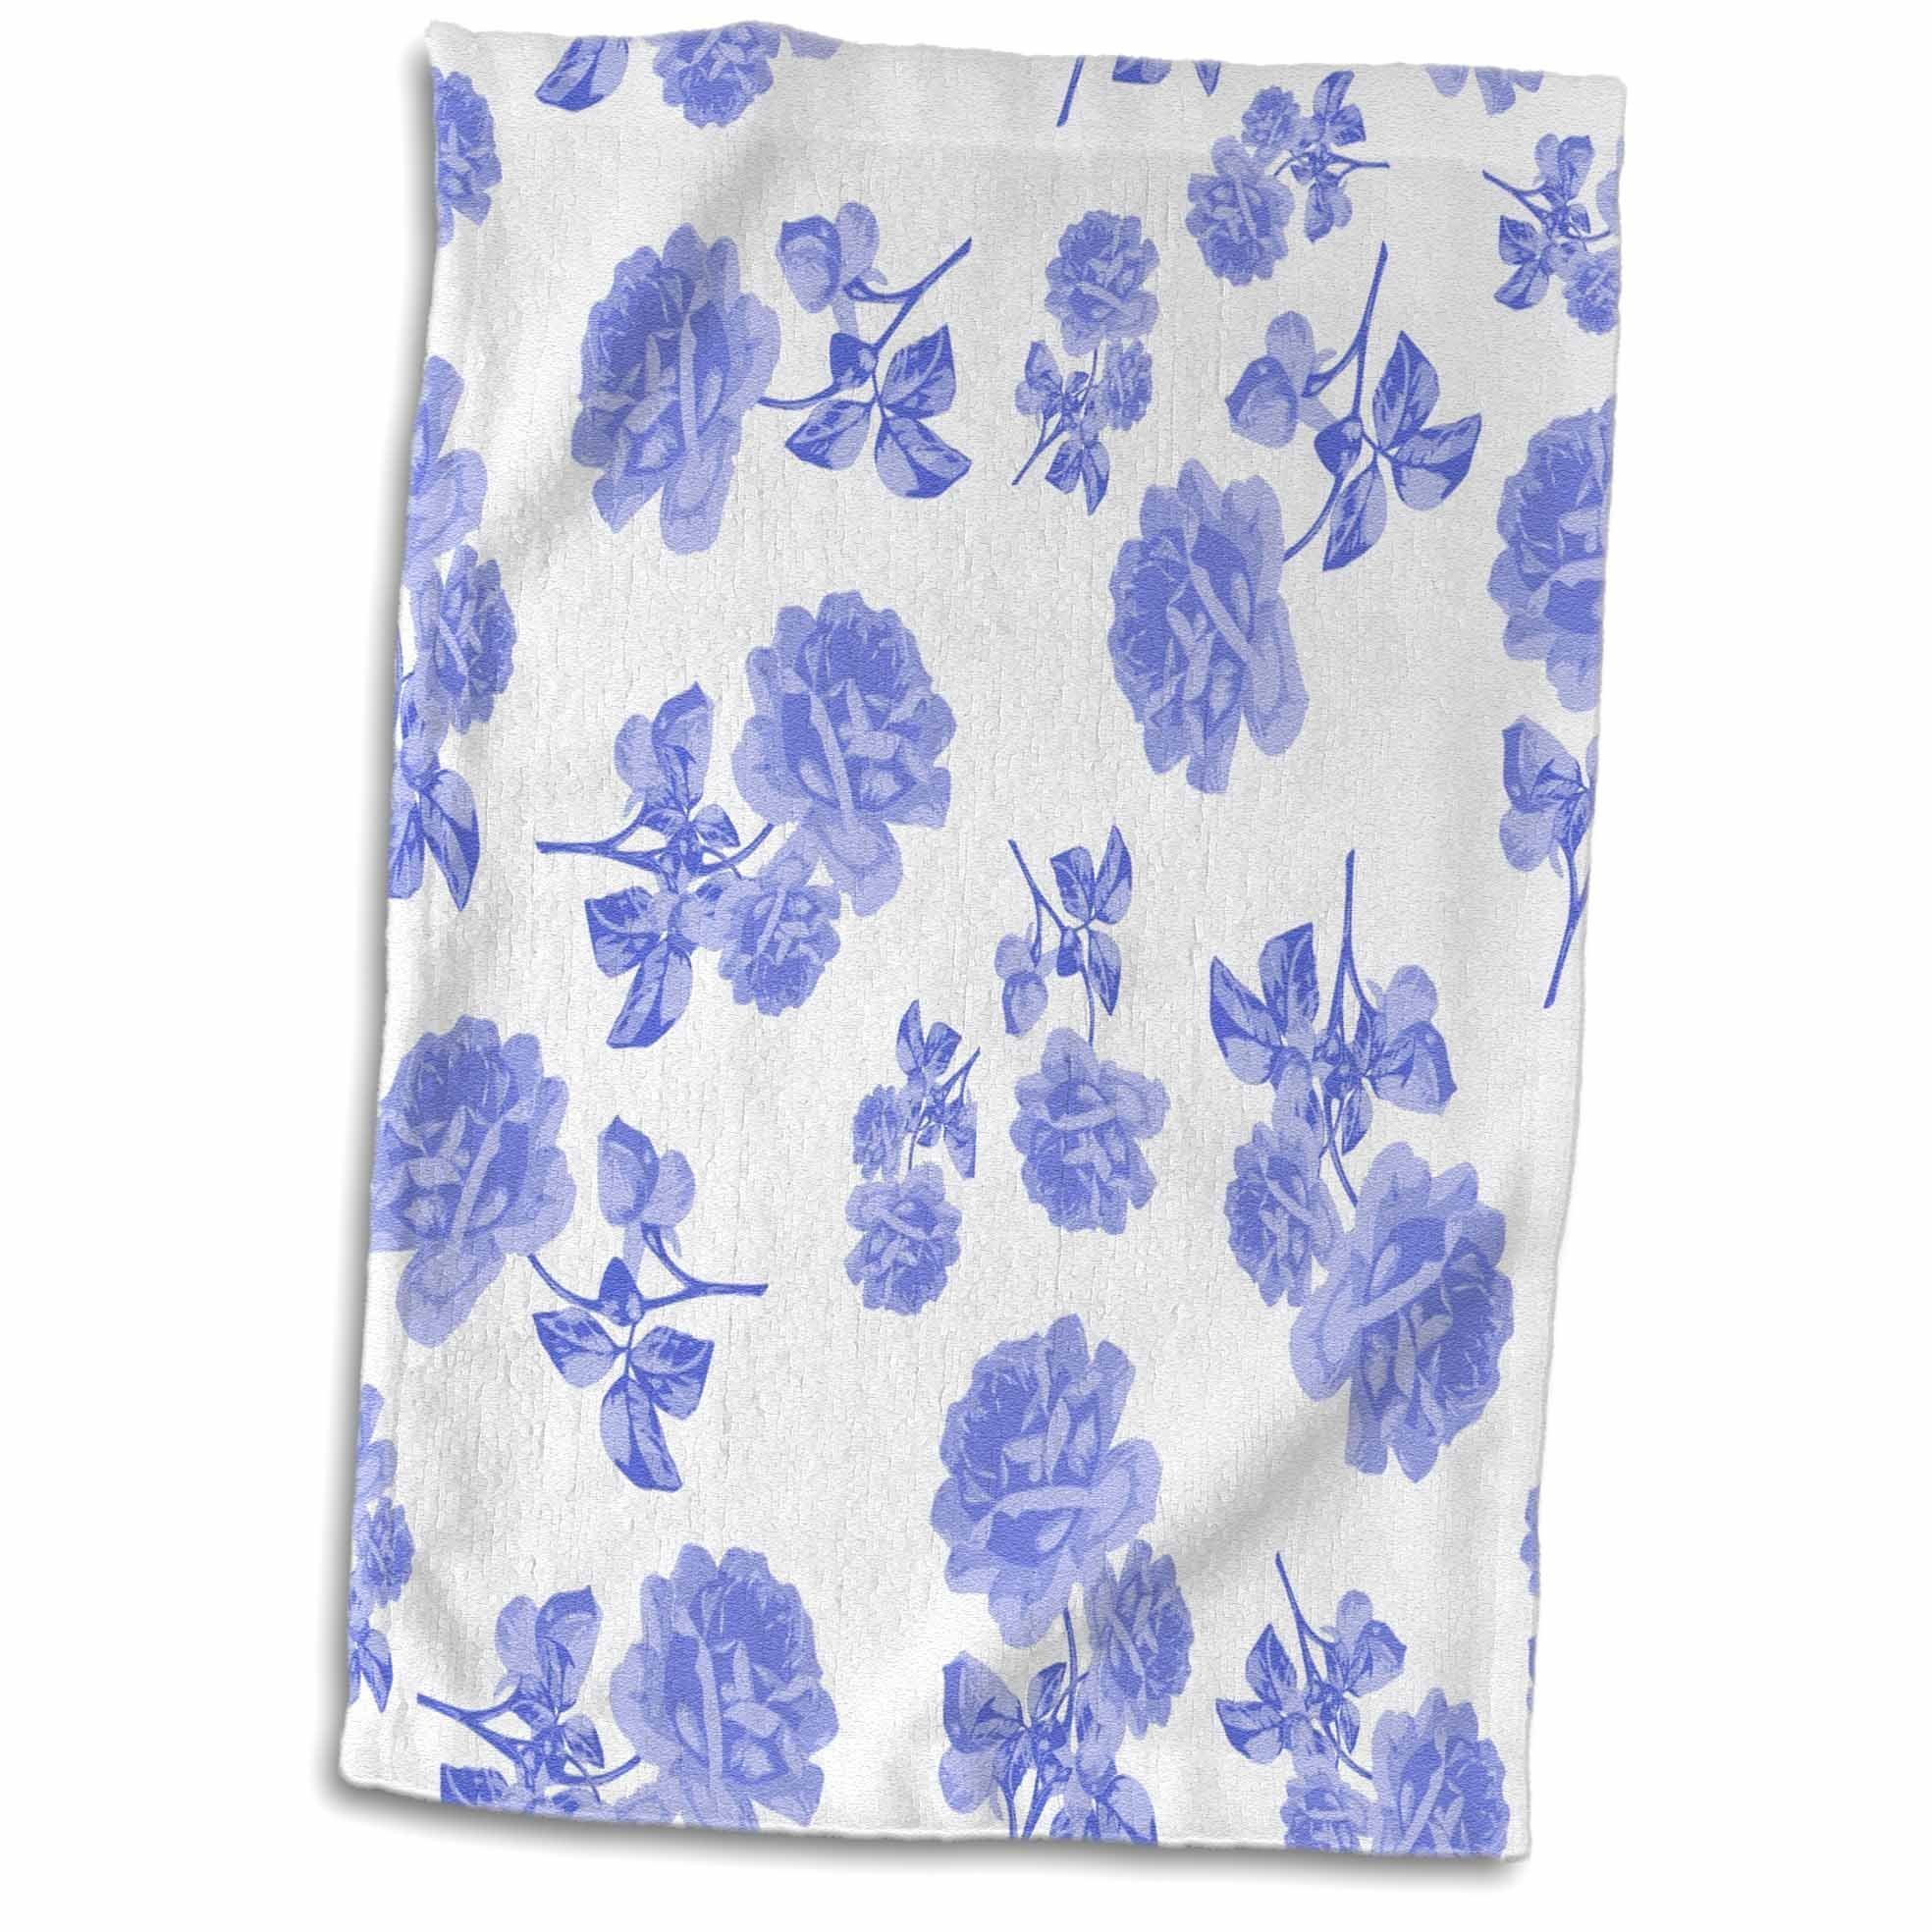 3D Rose Blue and White Flower Pattern Inspired by Oriental Porcelain and Delft twl_183969_1 Towel, 15'' x 22'', Multicolor